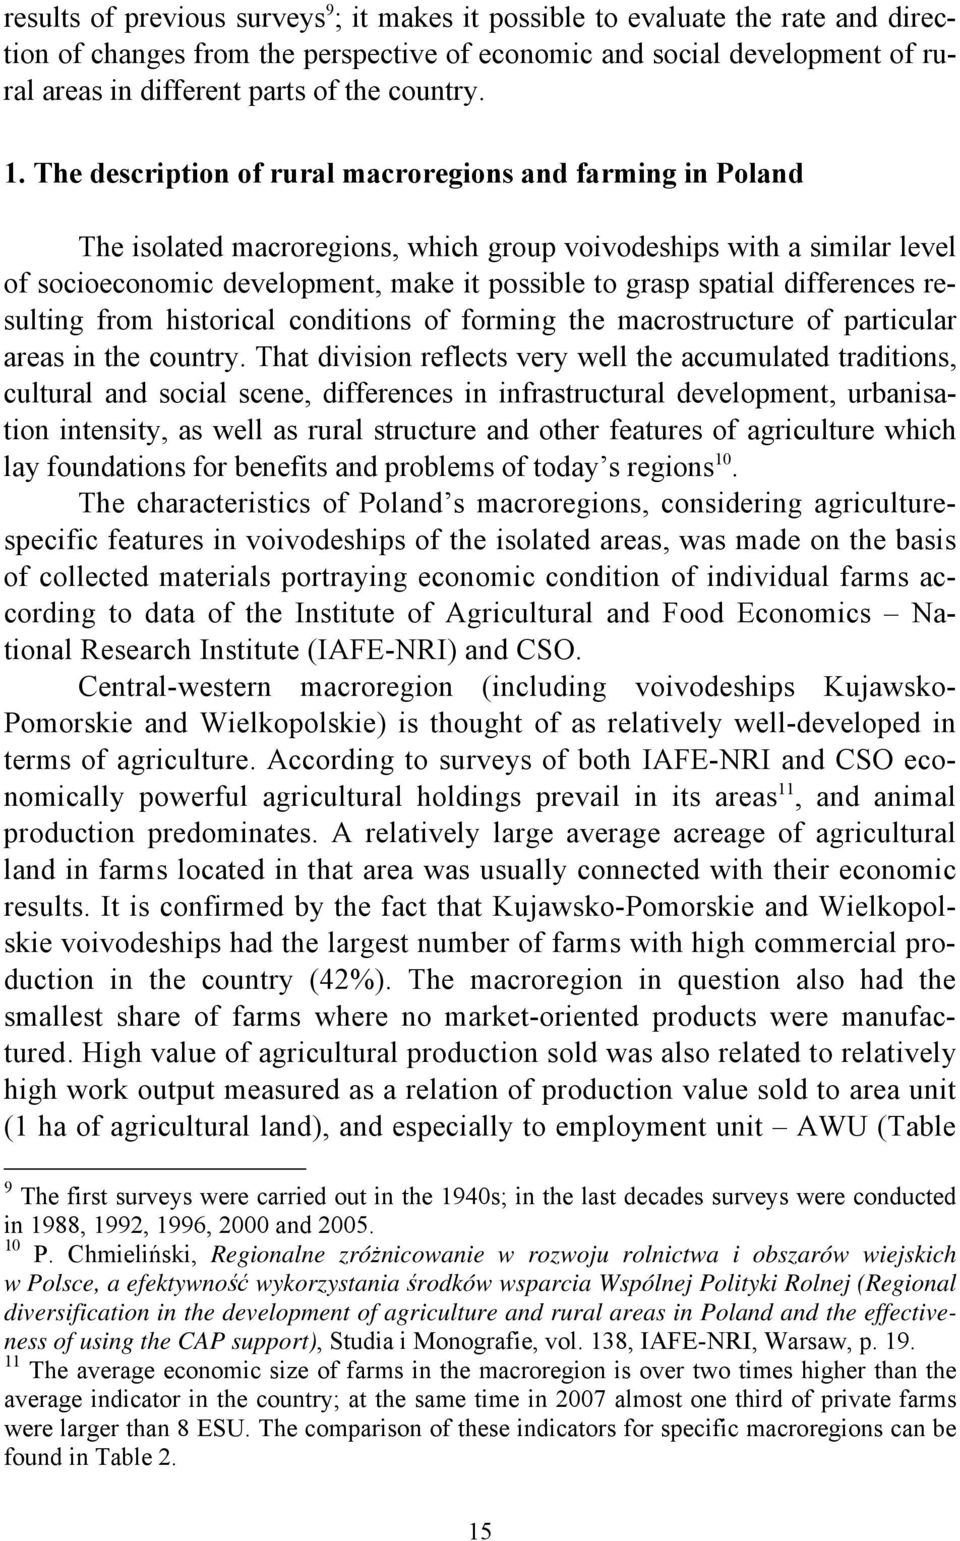 The description of rural macroregions and farming in Poland The isolated macroregions, which group voivodeships with a similar level of socioeconomic development, make it possible to grasp spatial